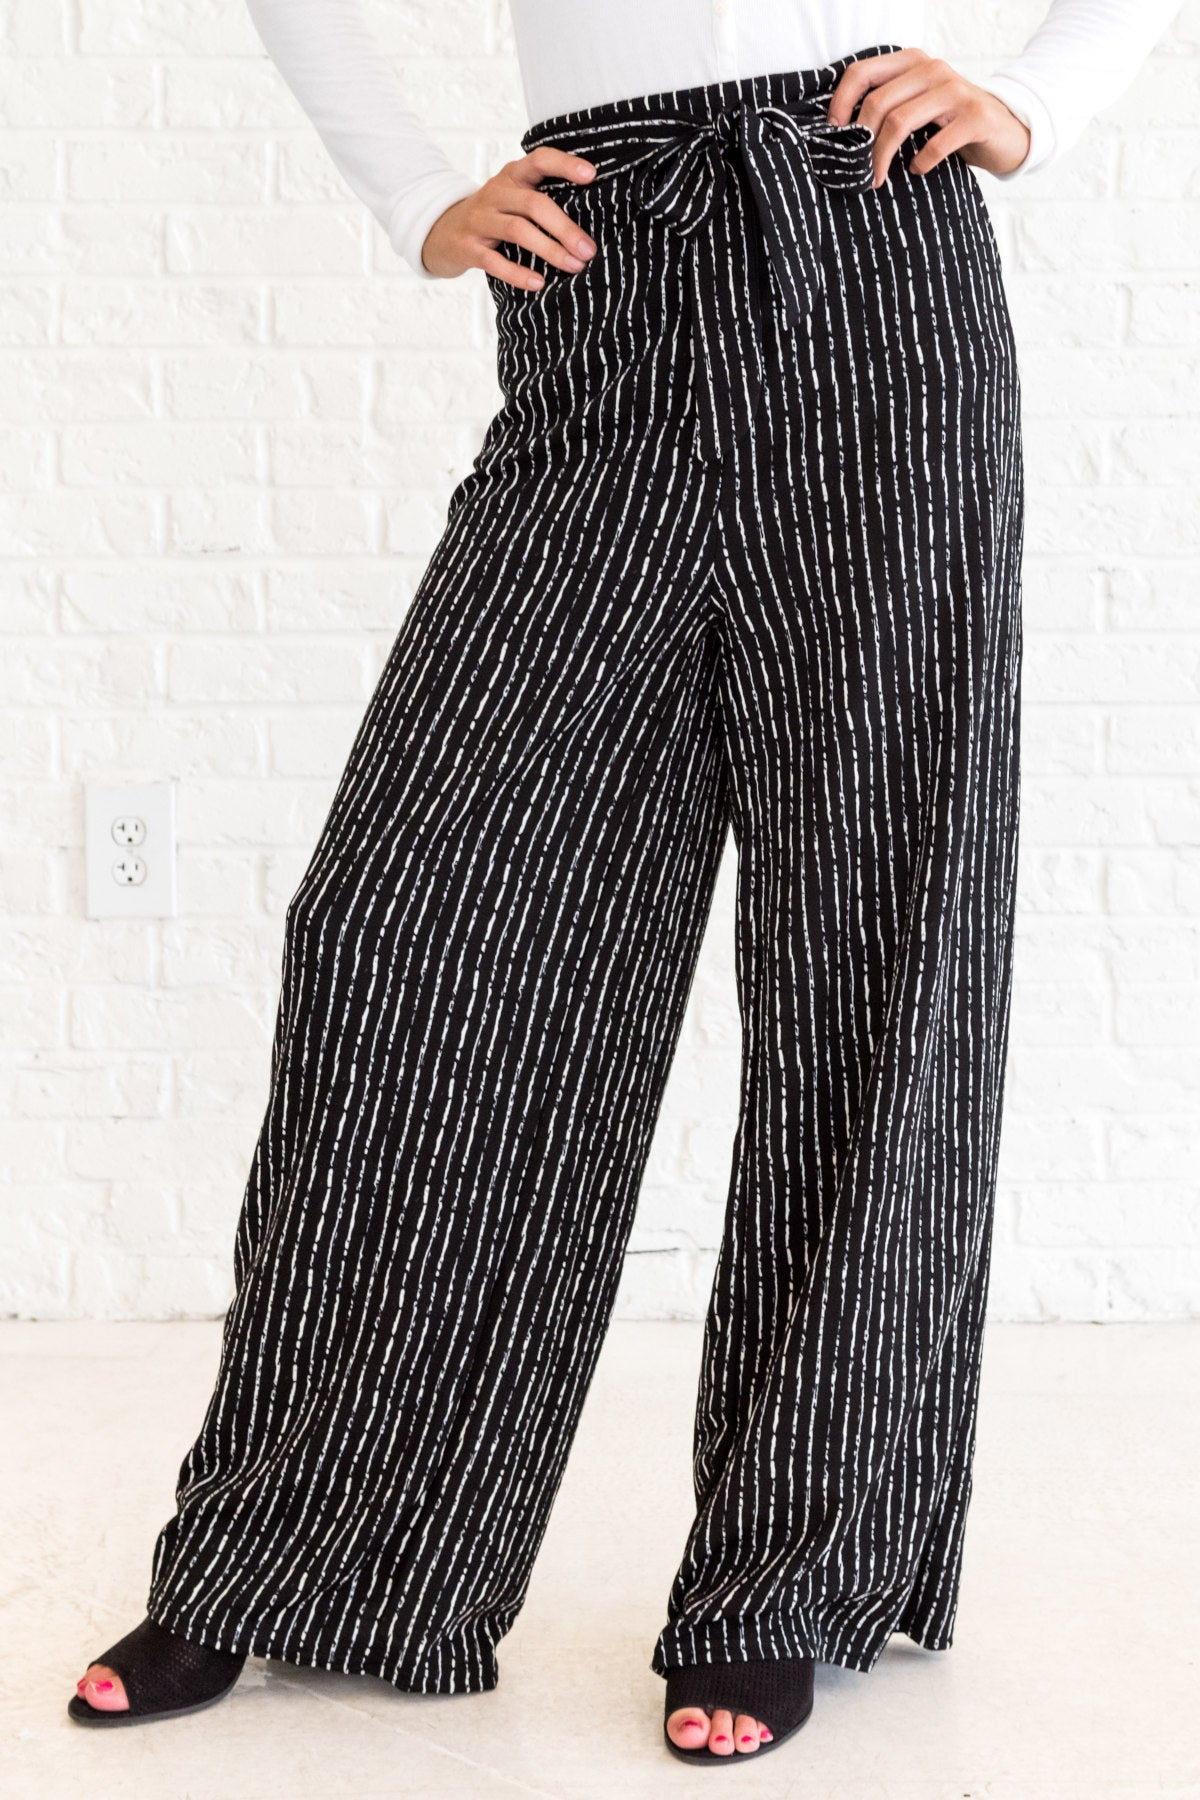 60bbd38b33912a Black White Striped Flare Palazzo Pants with Tie Front and Pockets